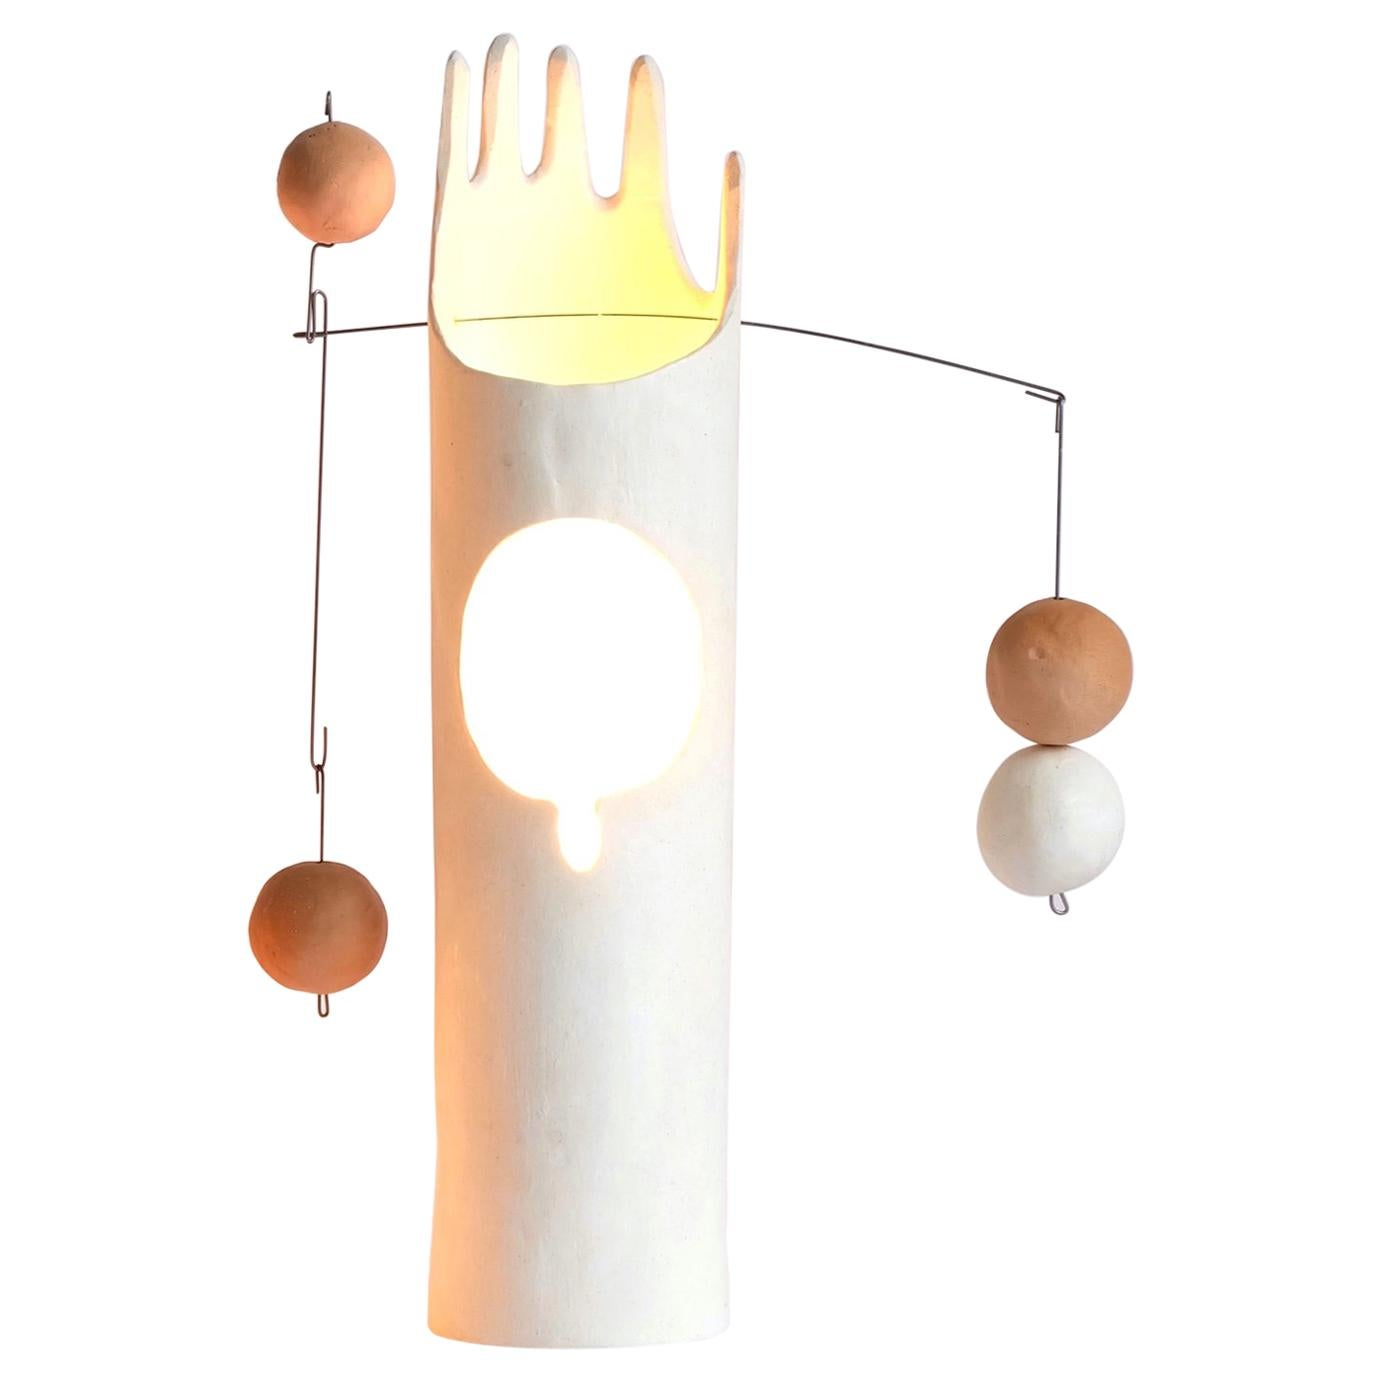 Rico, Contemporary Sculptural Hand-Built Ceramic Table Lamp in Matte White